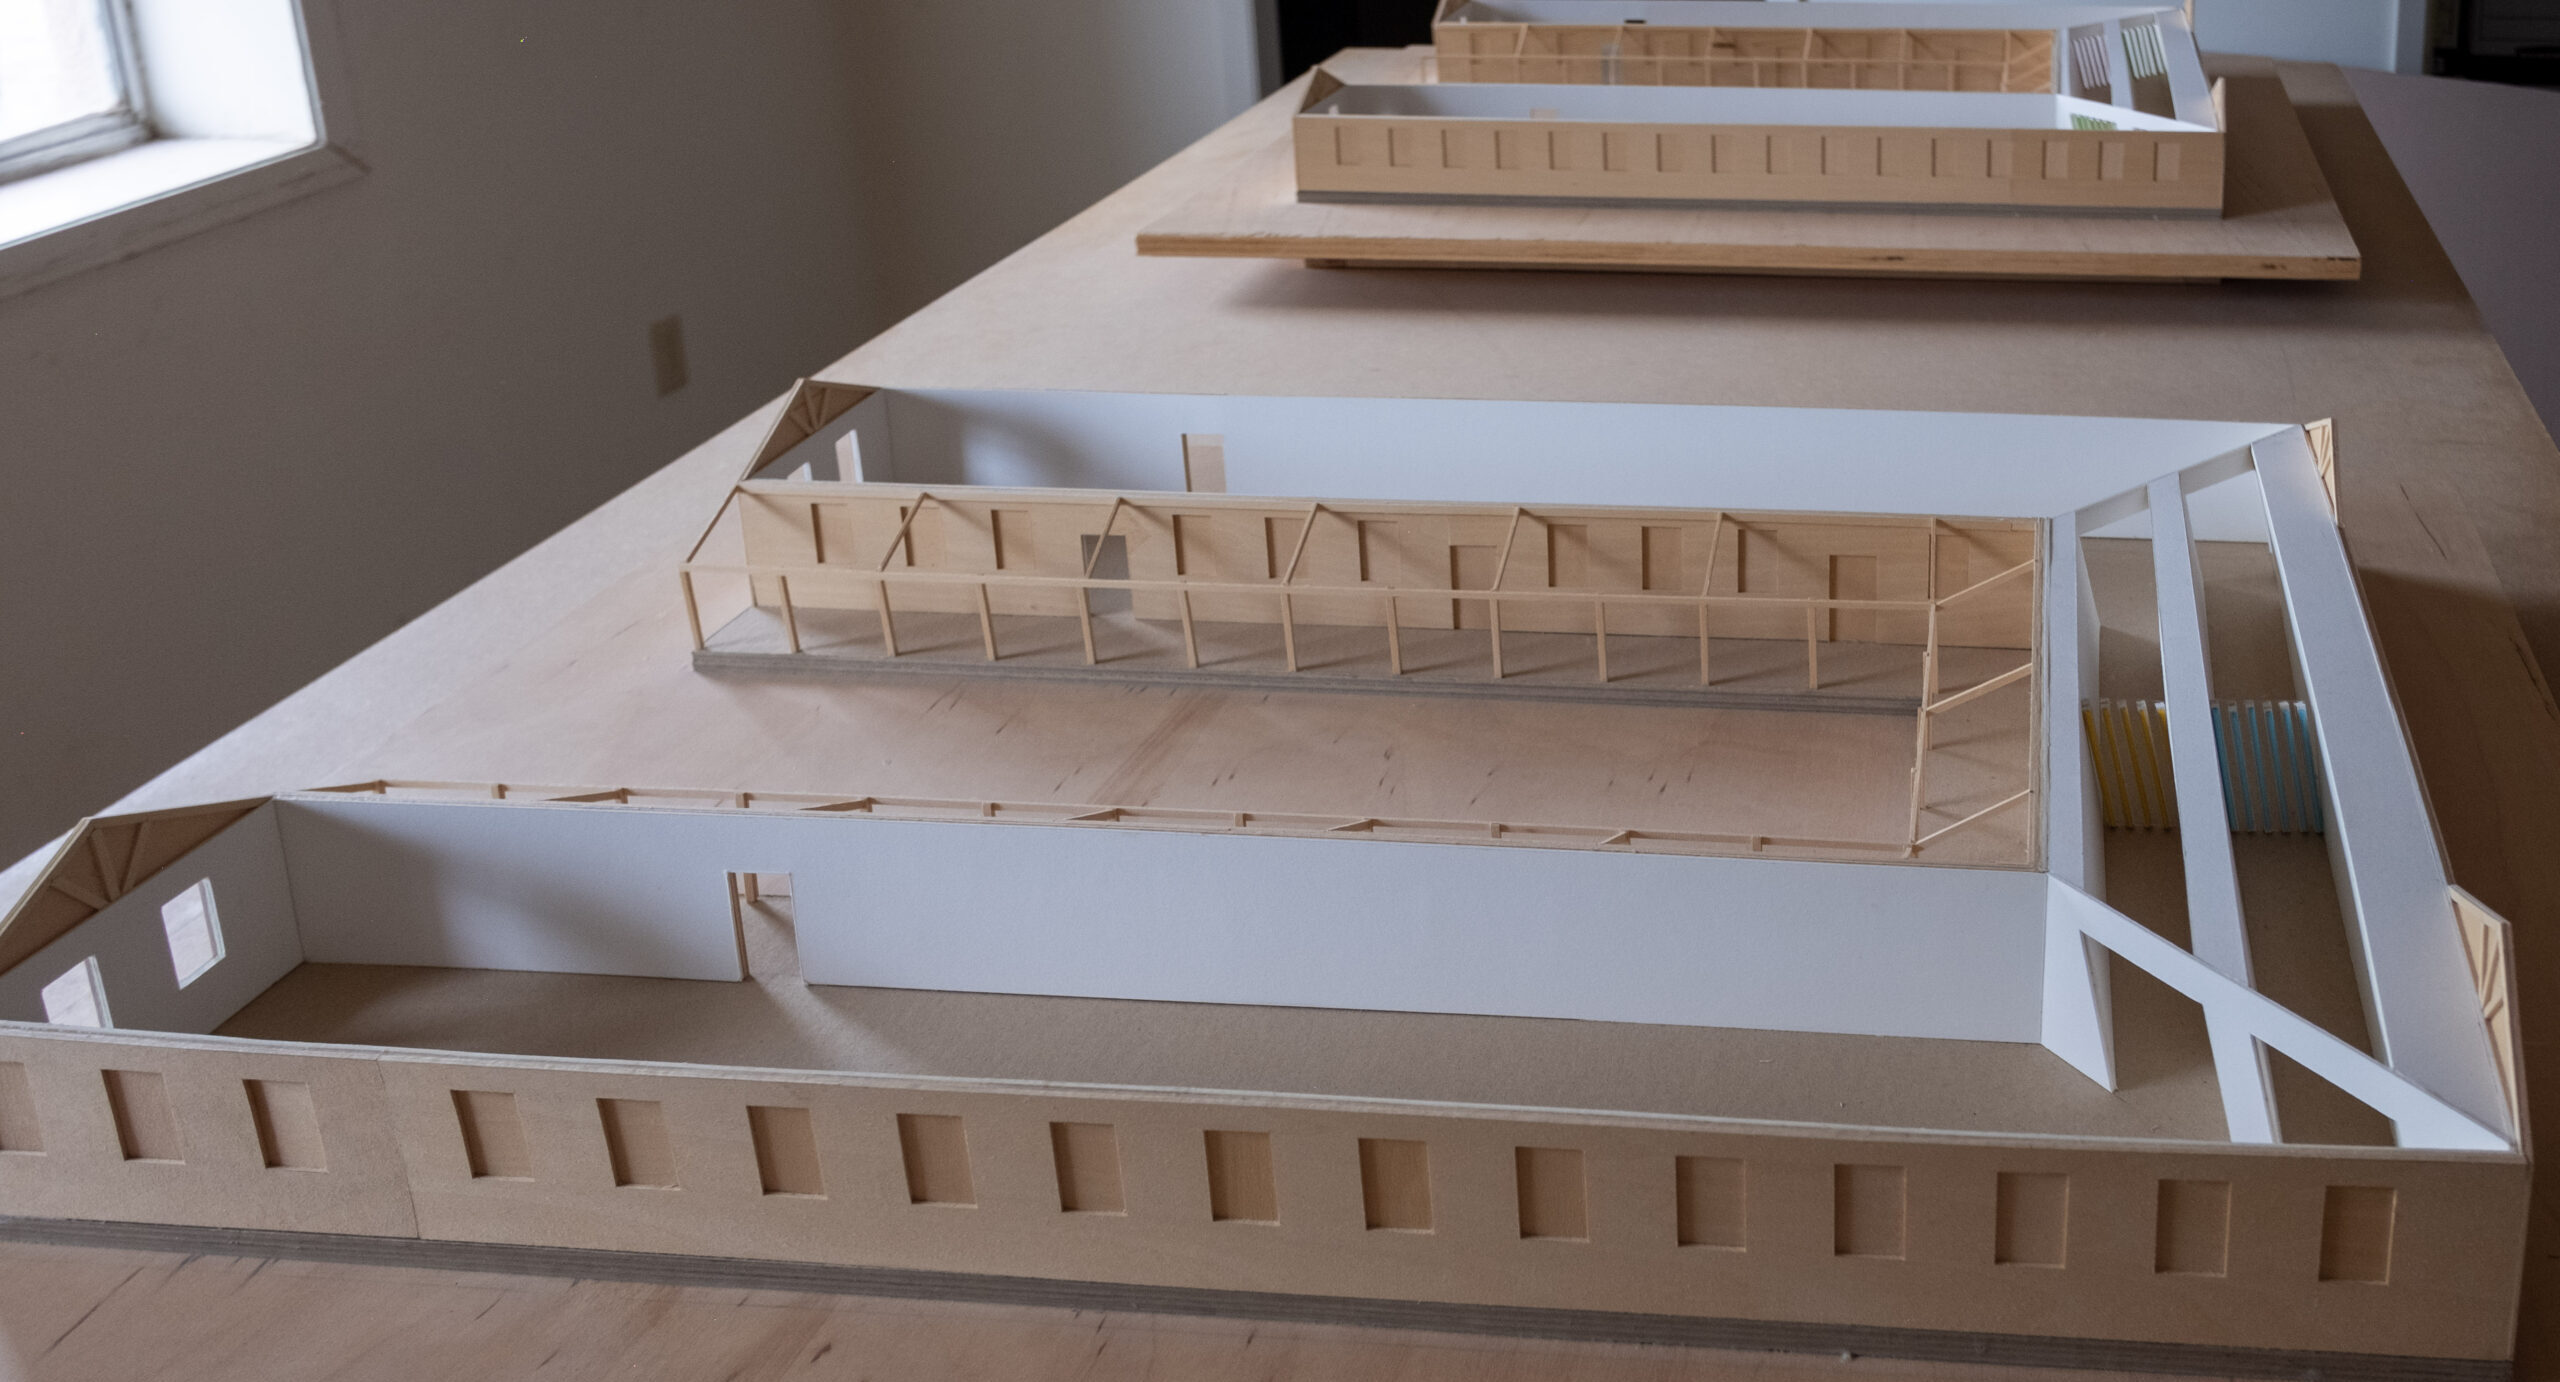 architectural models of Dan Flavin's untitled (Marfa project)